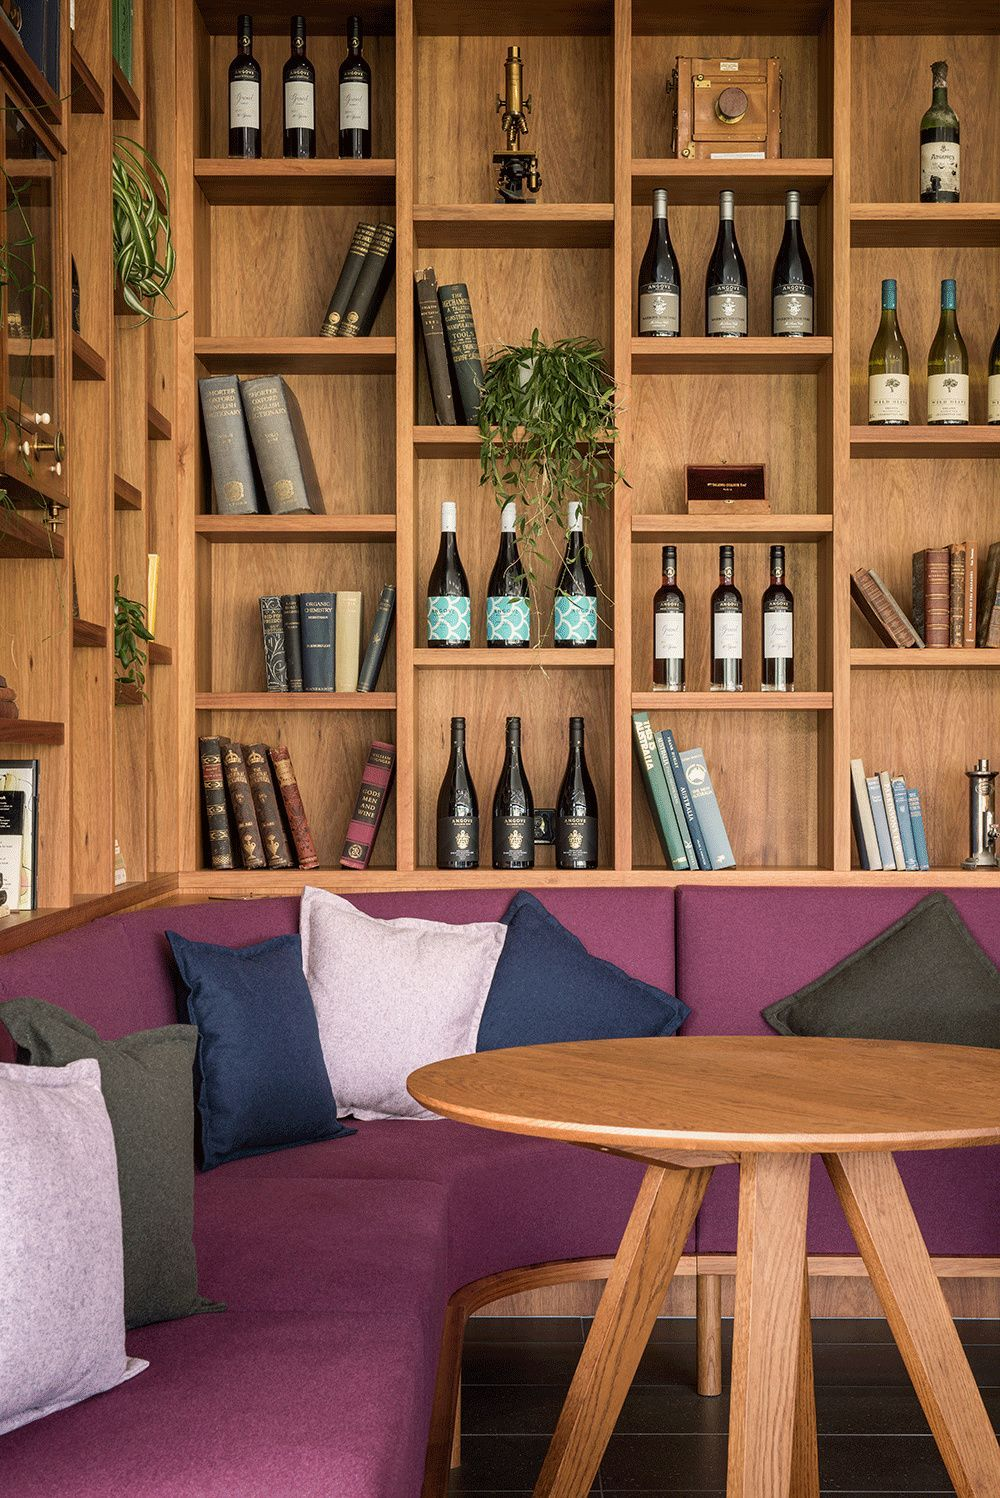 Angrove Cellar Door + Builtin Storage + Coffee Shop Design + L-Shape Sofa + Builtin Bench + Winery Design + Book Shelves + Throw Pillows | Design by Georgie Shepherd Interior Designer